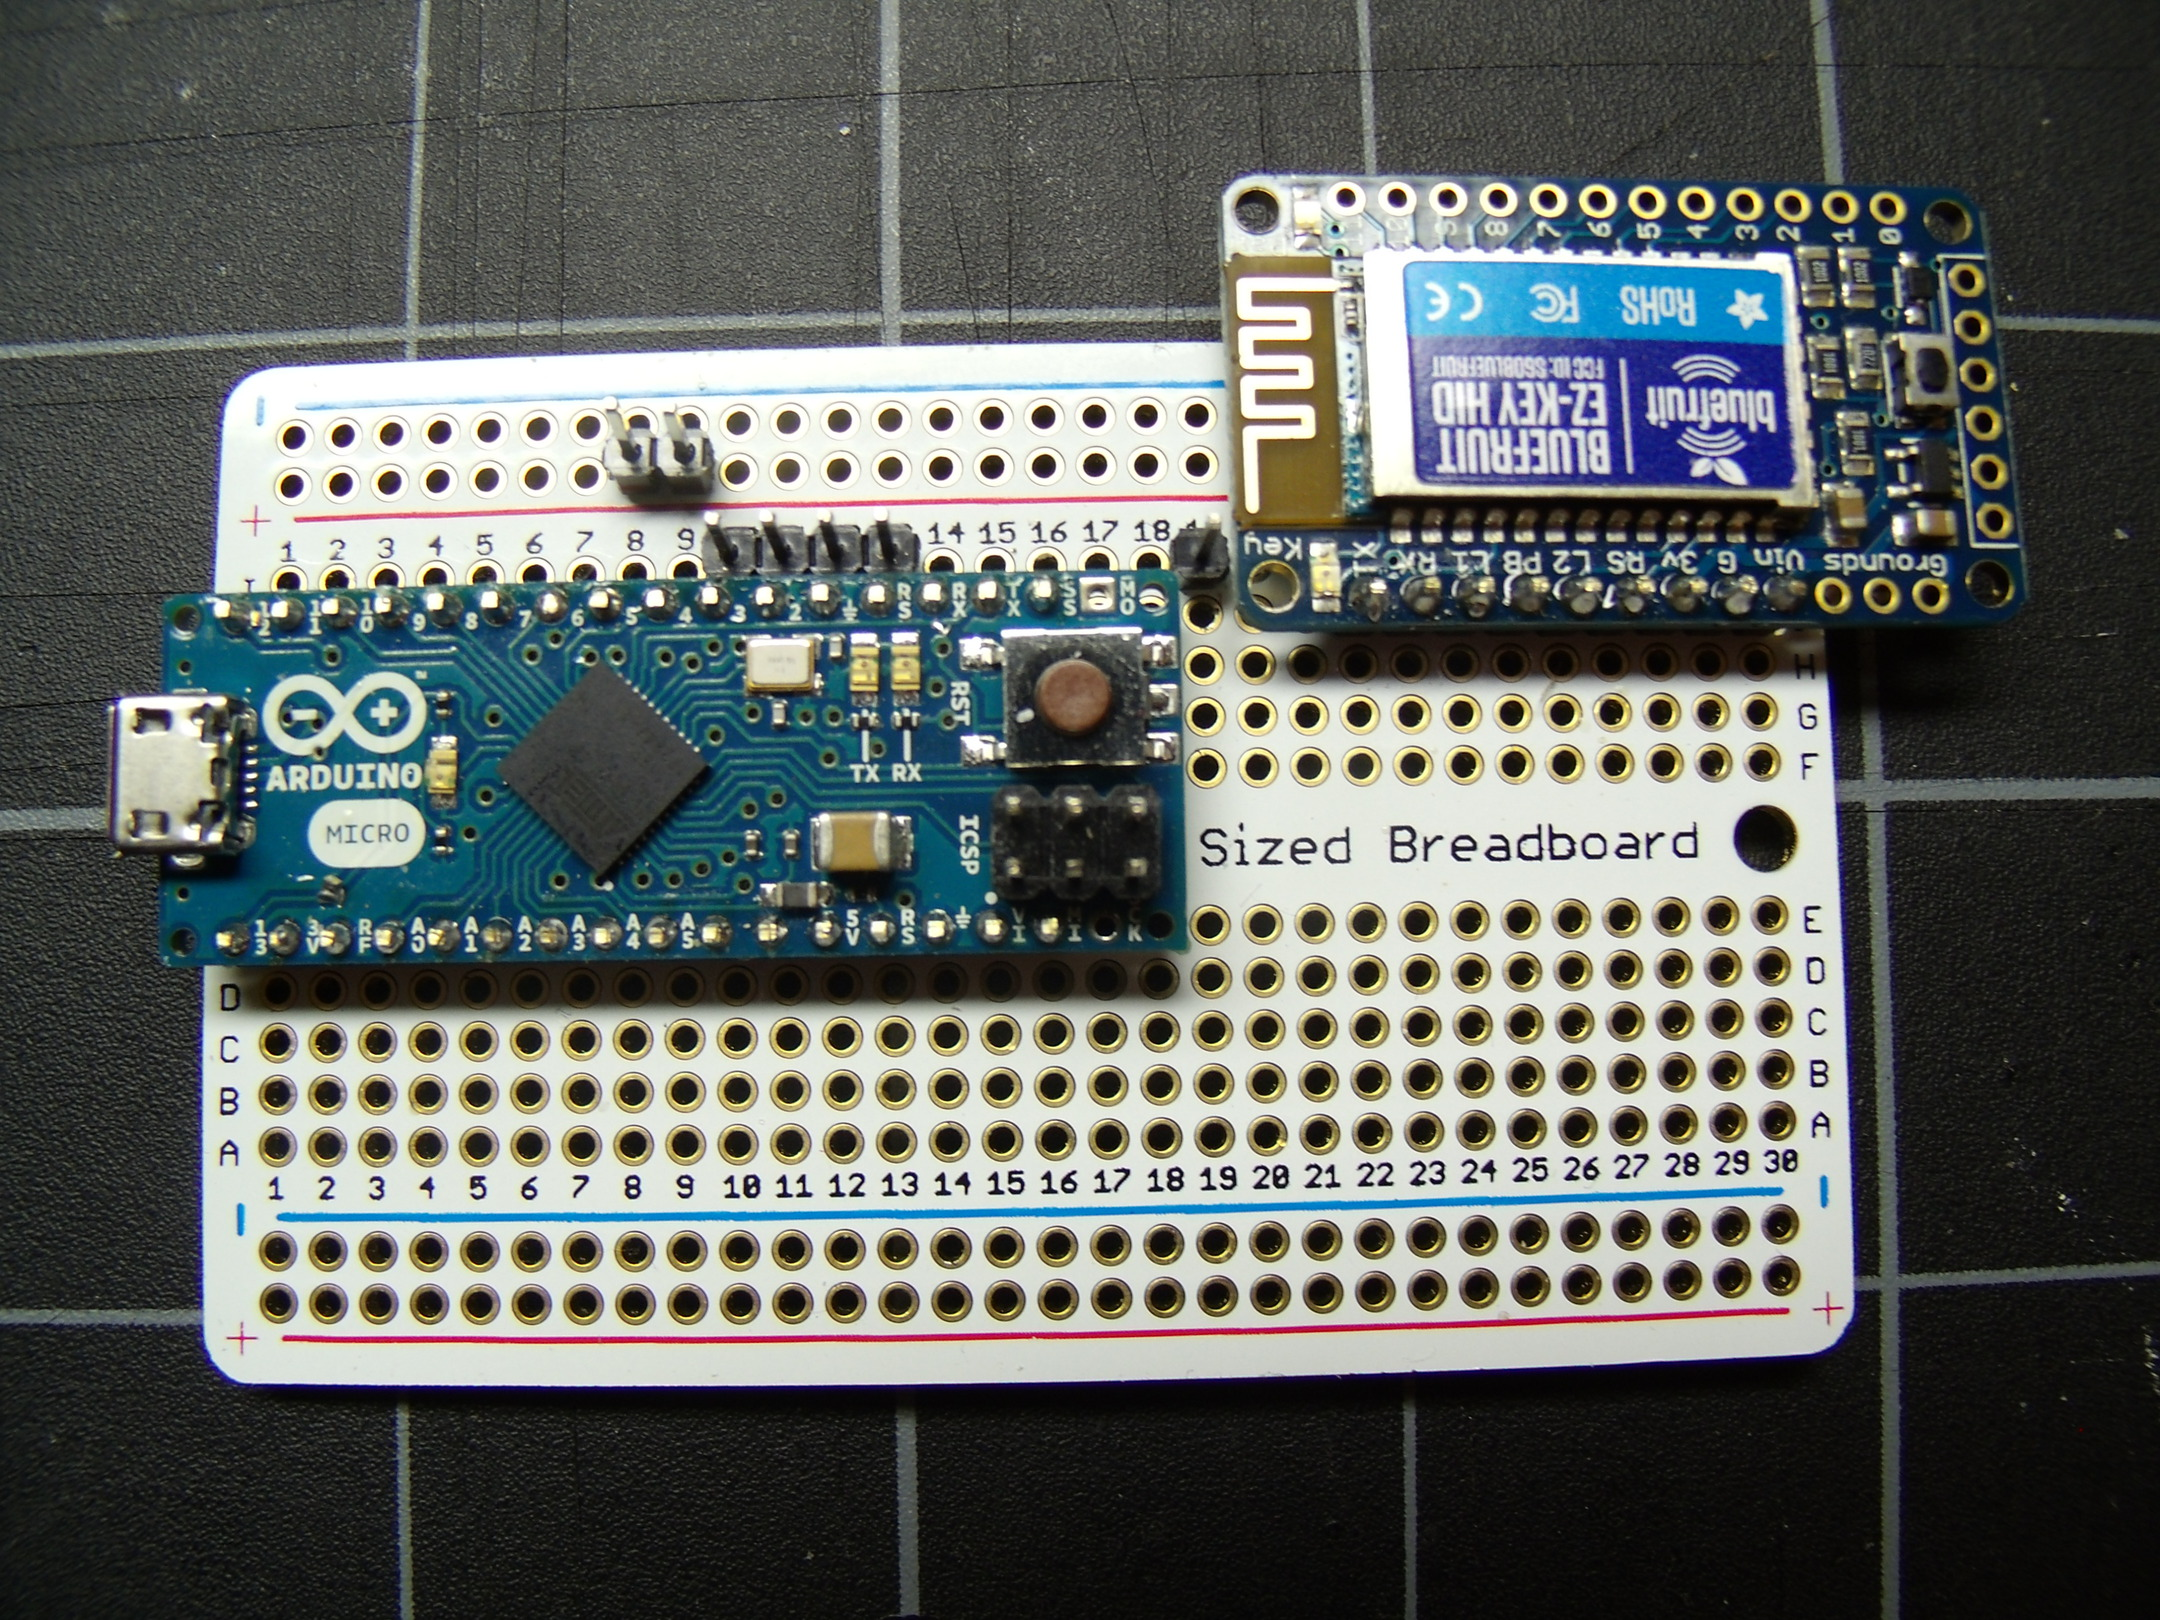 hacks_012_assembled_pcb.resized.jpg